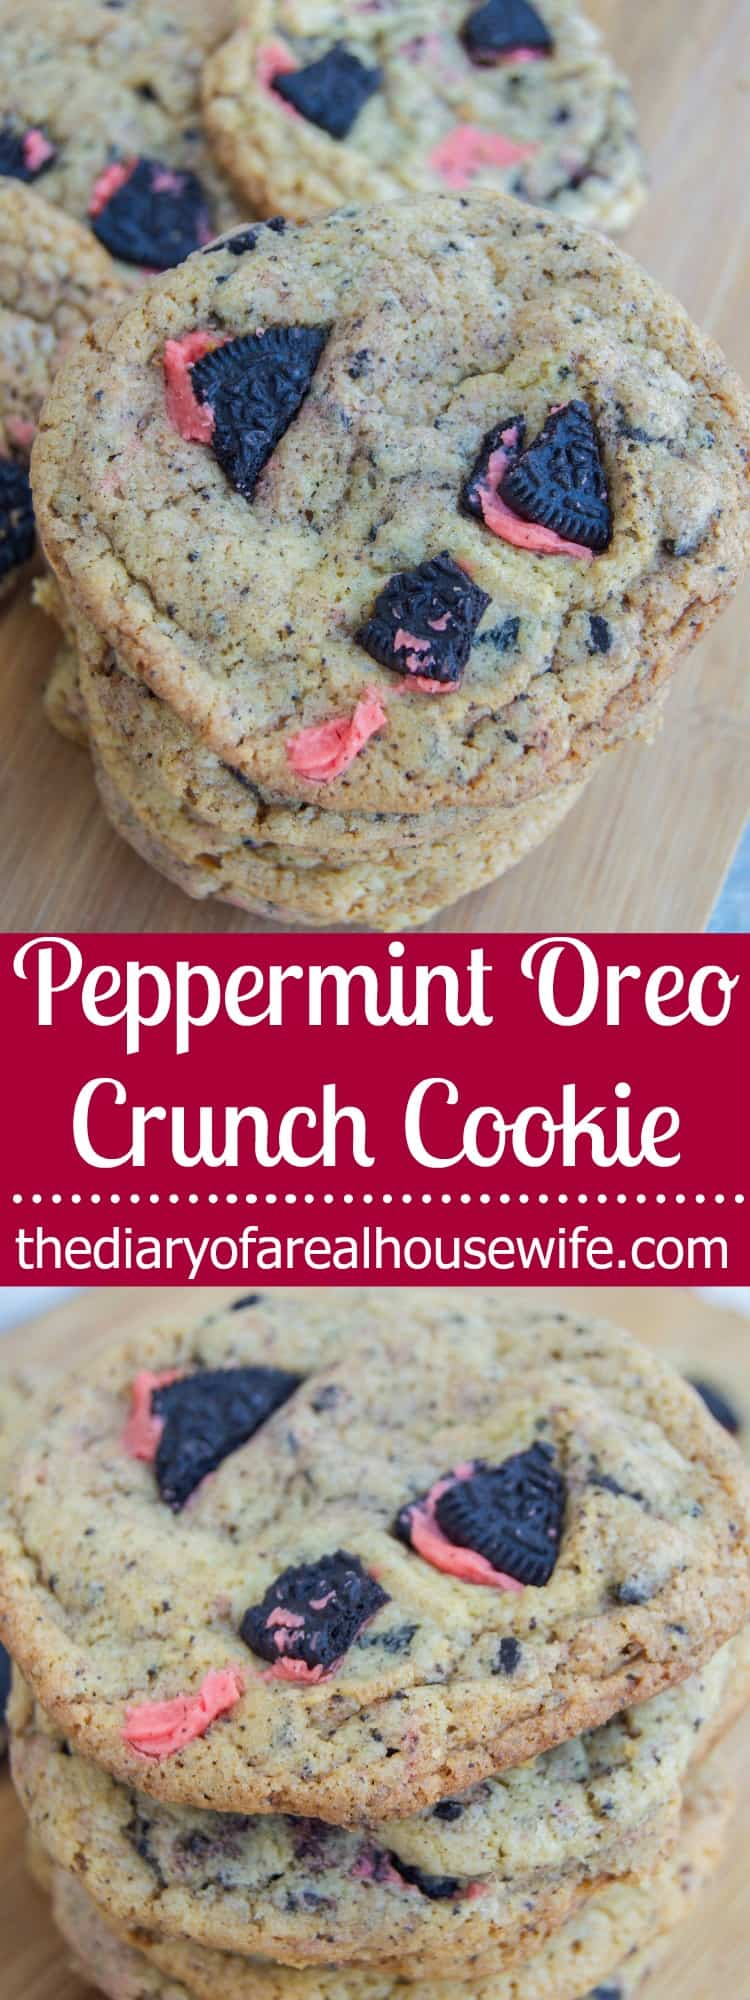 Peppermint Oreo Crunch Cookie